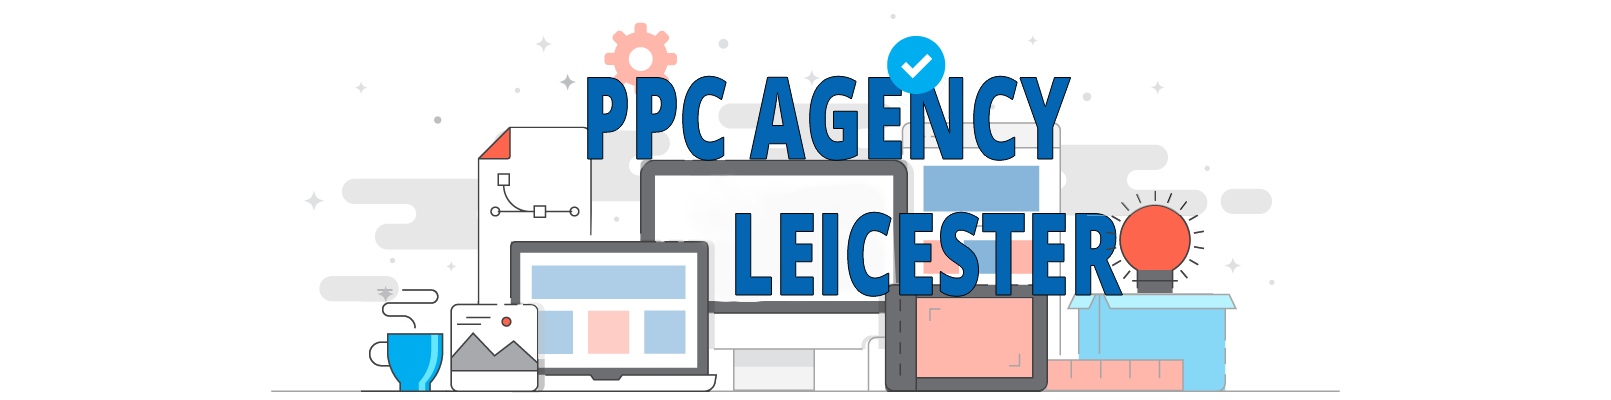 seek social ppc agency leicester header with transparent background